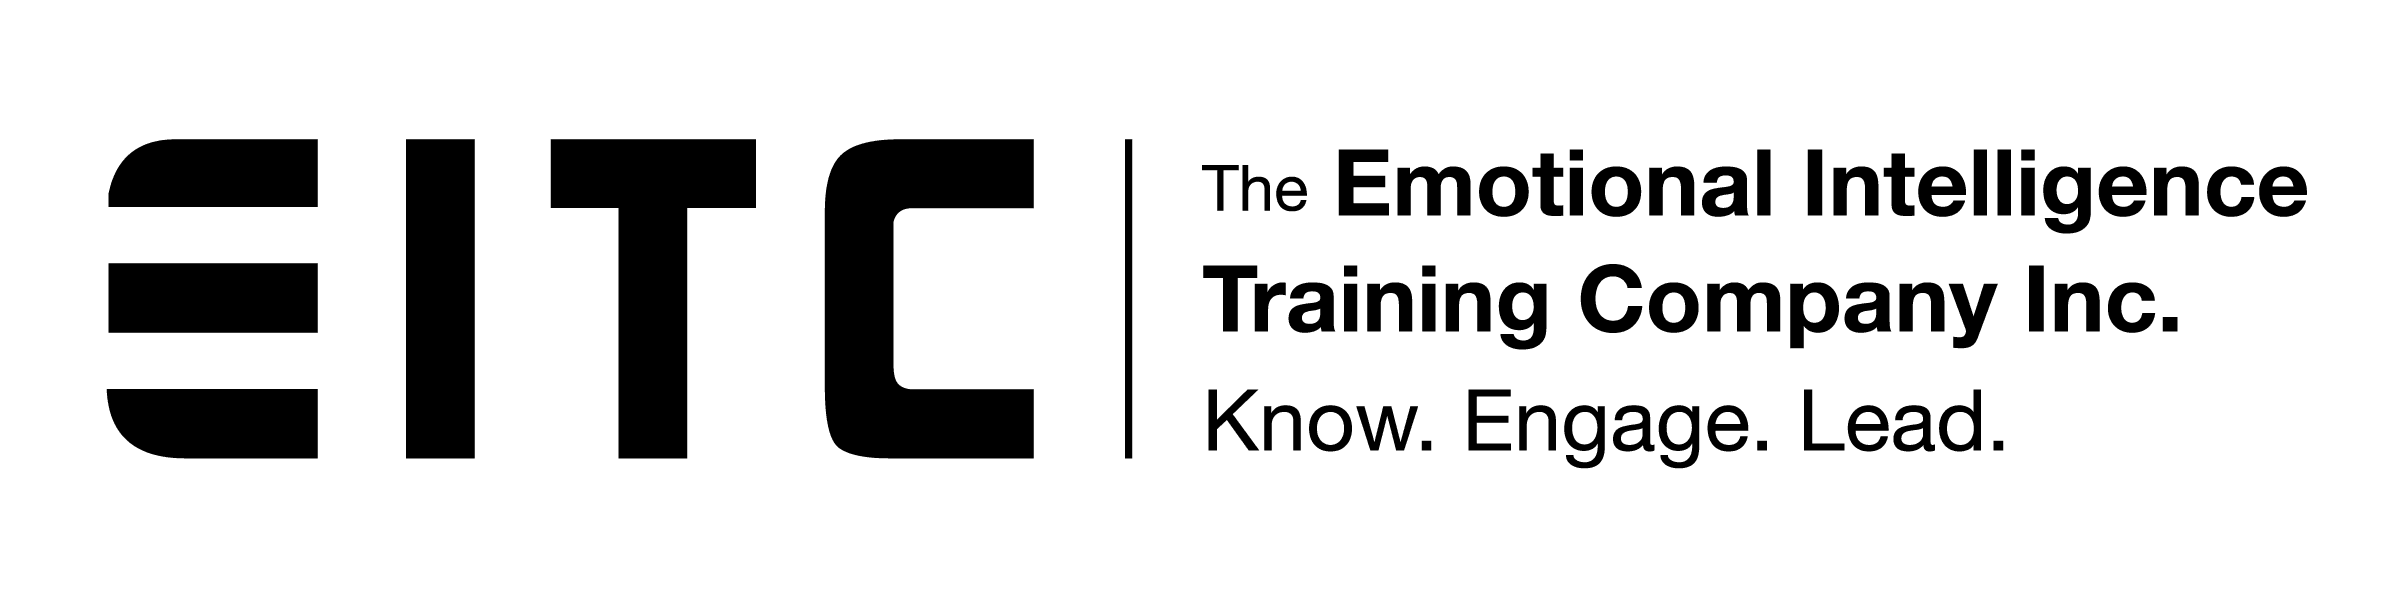 EITC The Emotional Intelligence Training Company, Inc. Know. Engage. Lead.